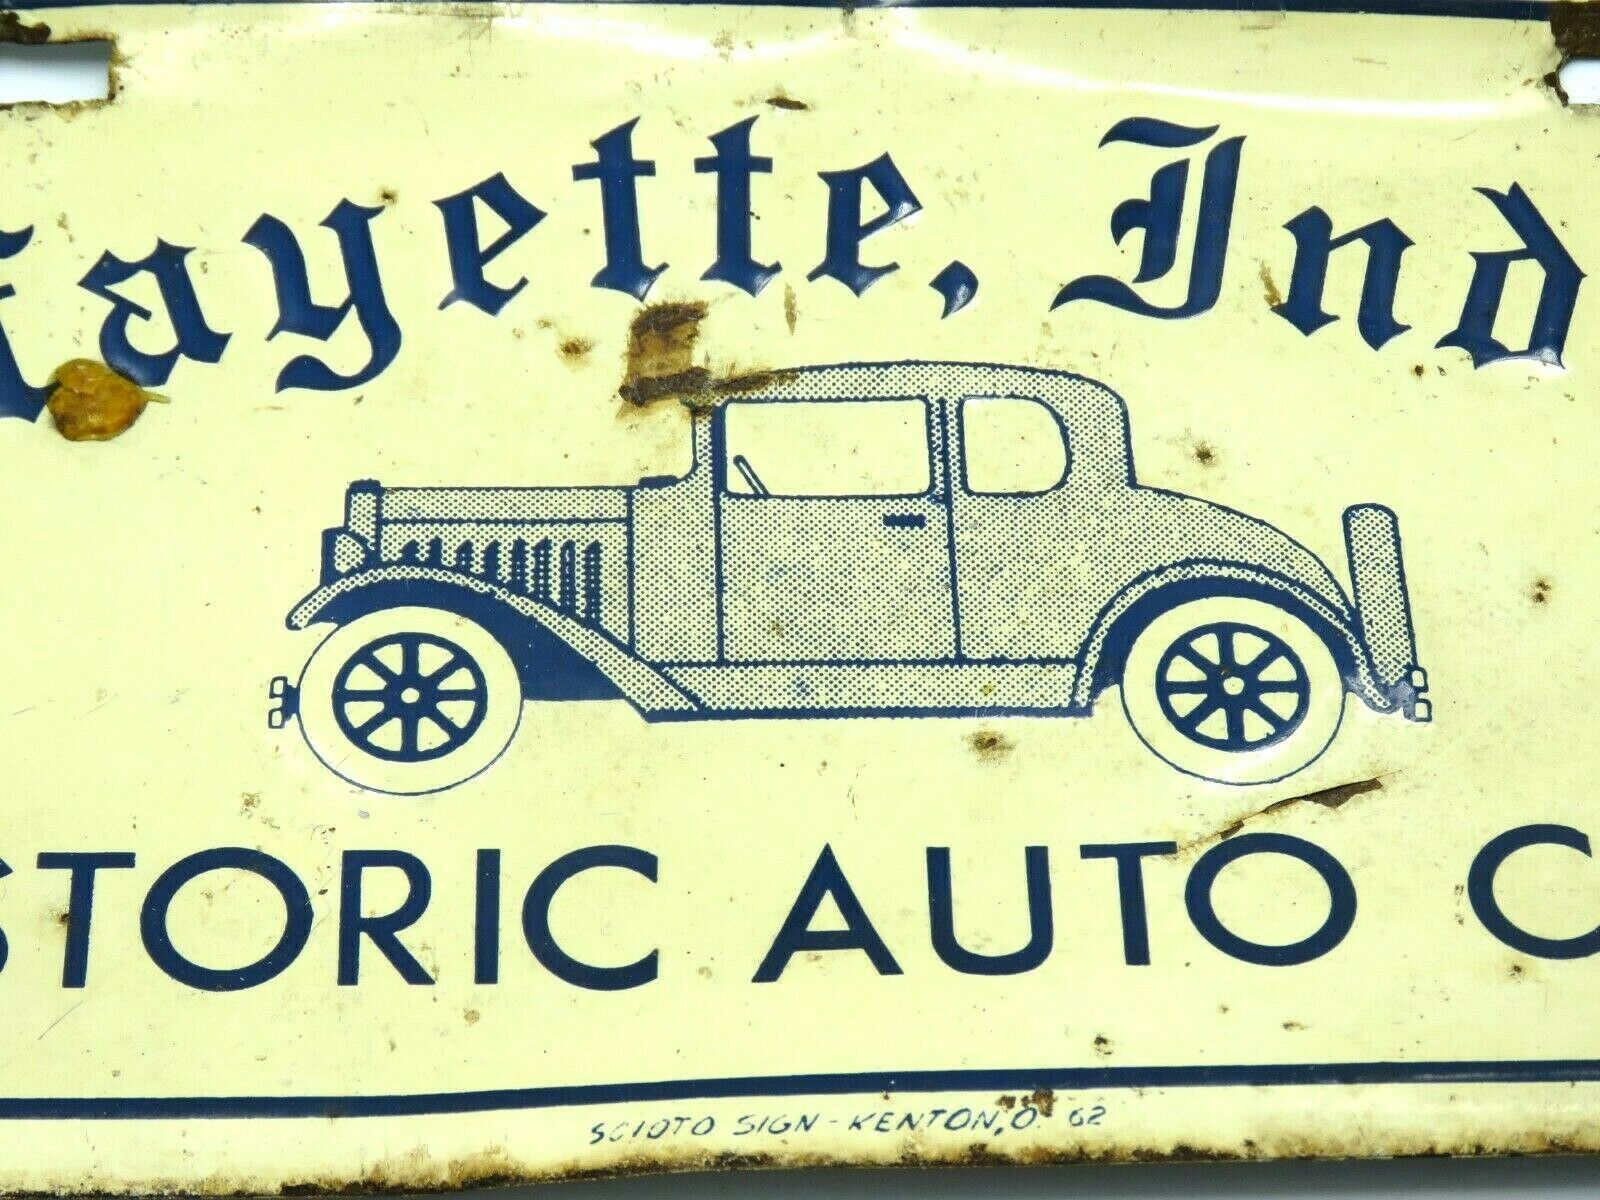 Vintage Historic Auto Club Lafayette Indiana Metal License Plate image 2